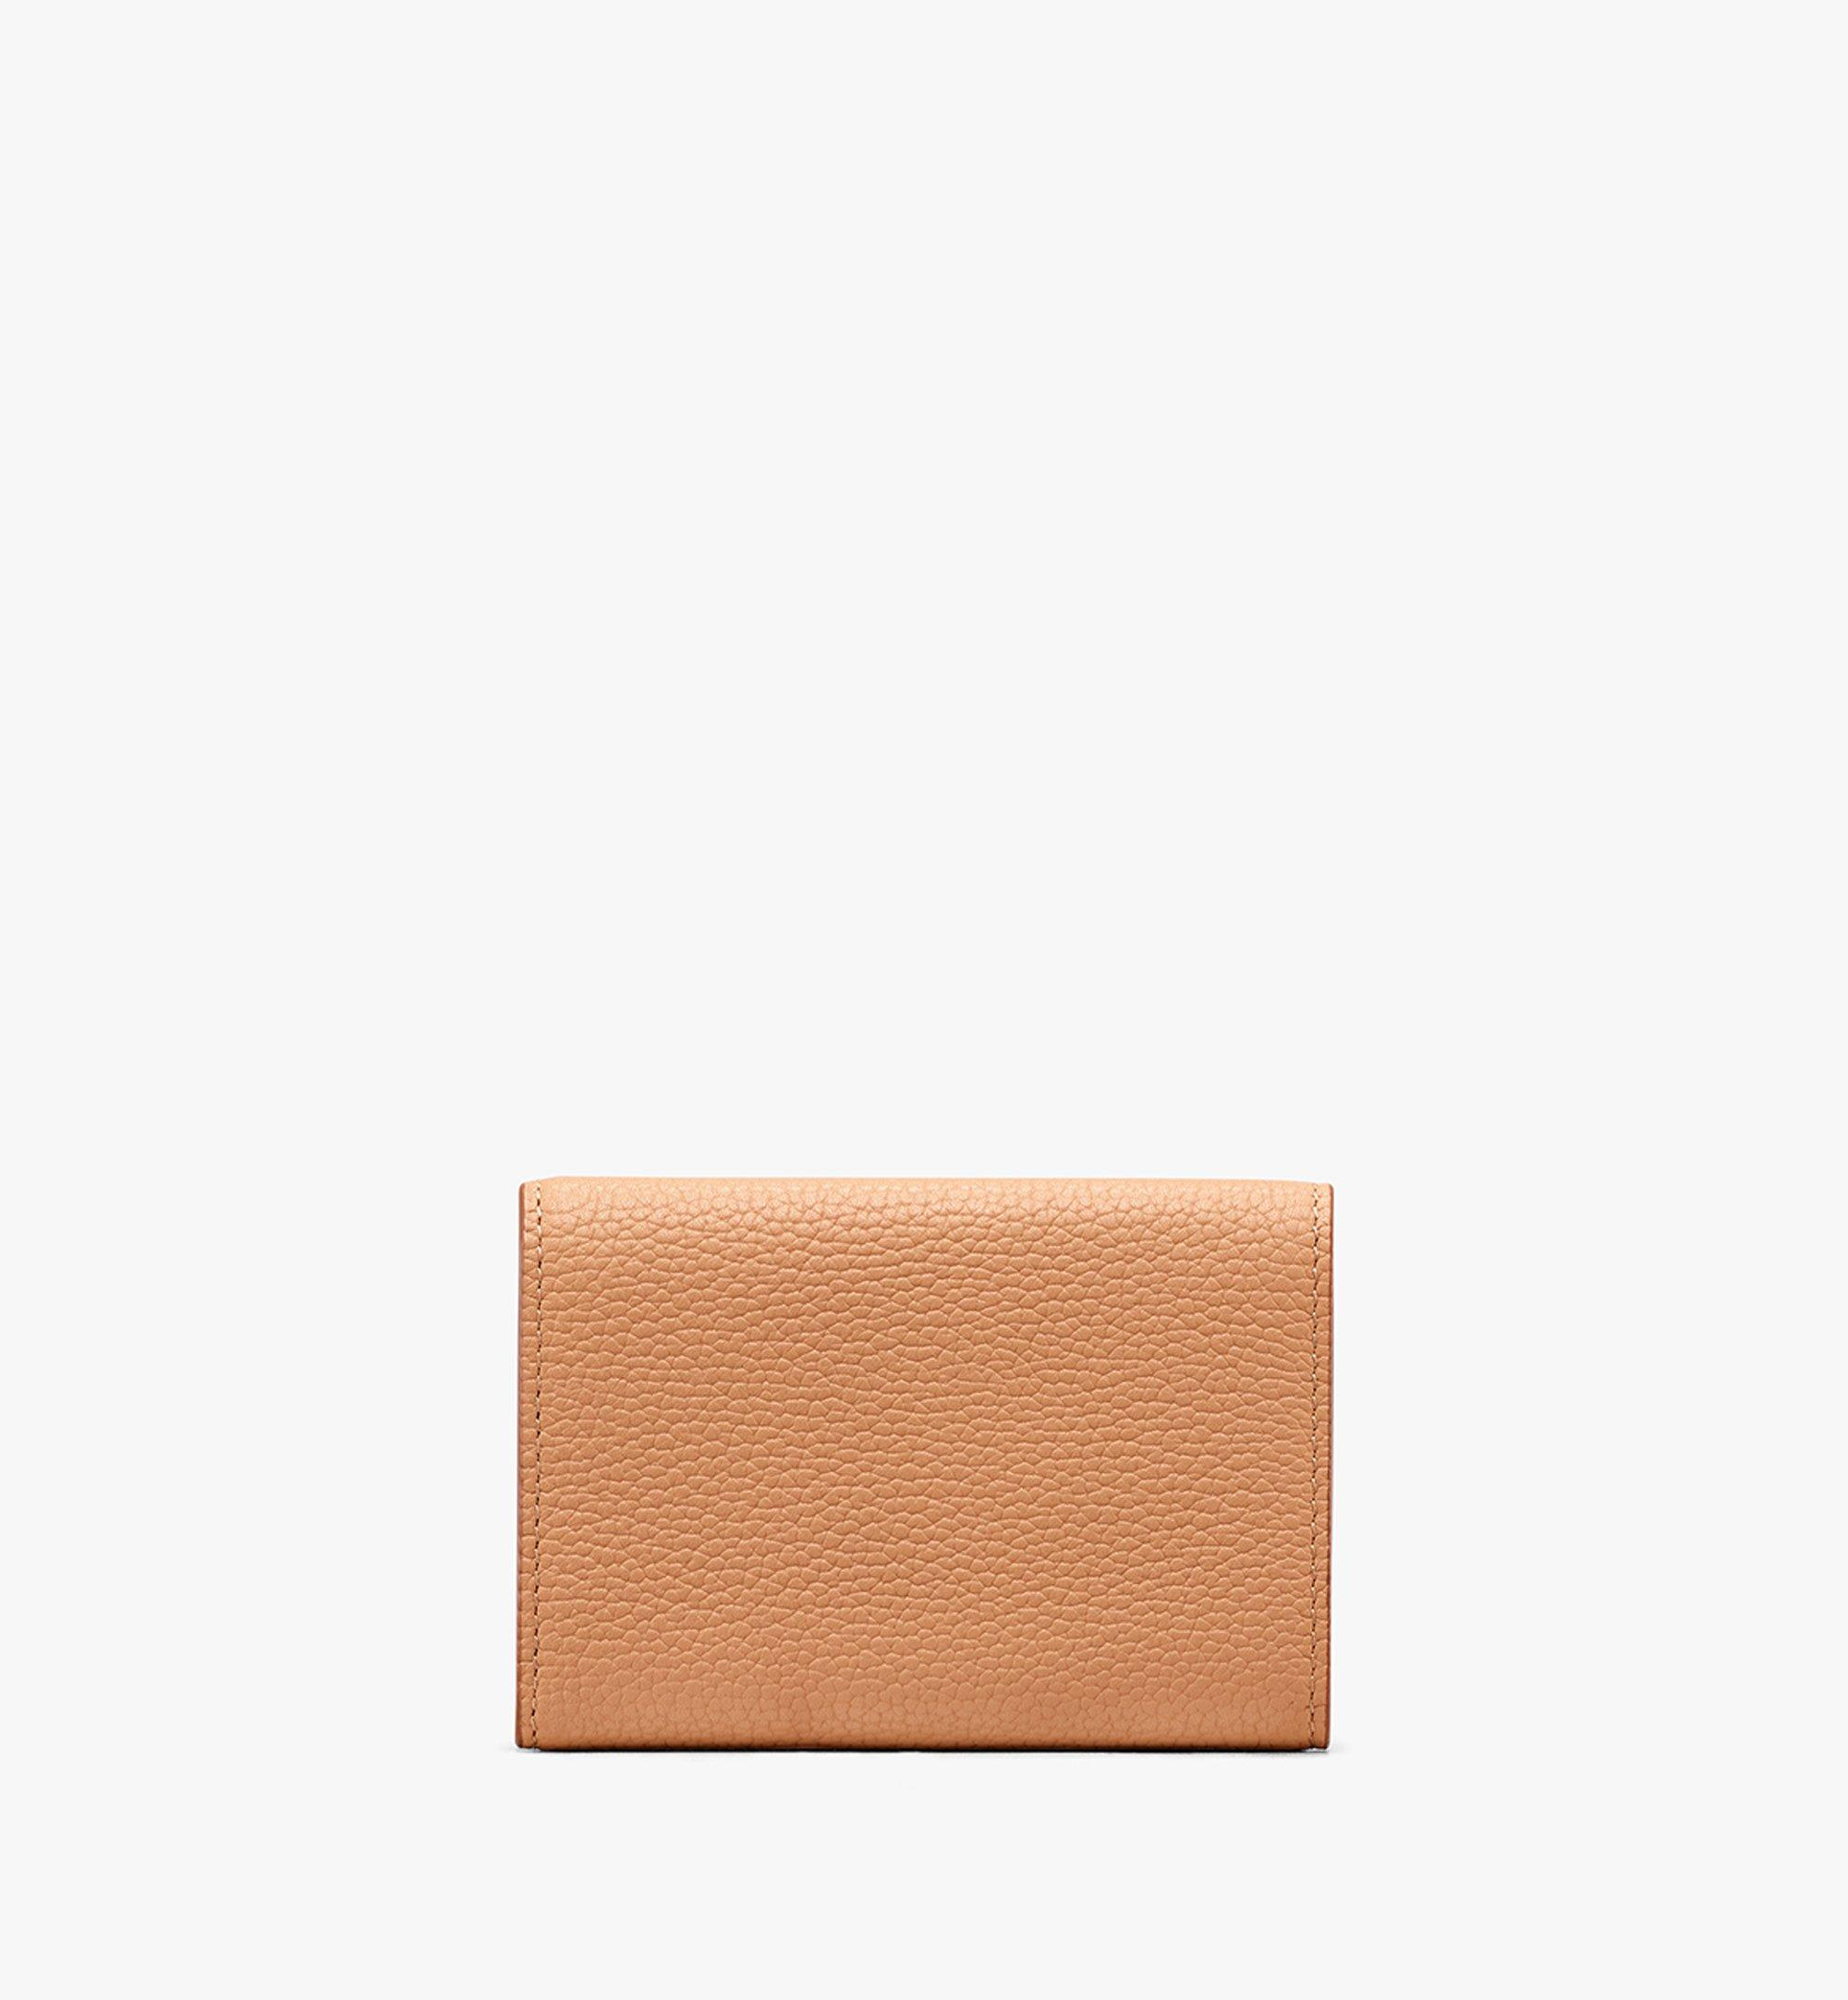 MCM Patricia Three-Fold Wallet in Studded Park Ave Leather Beige MYA9APA86BC001 Alternate View 2